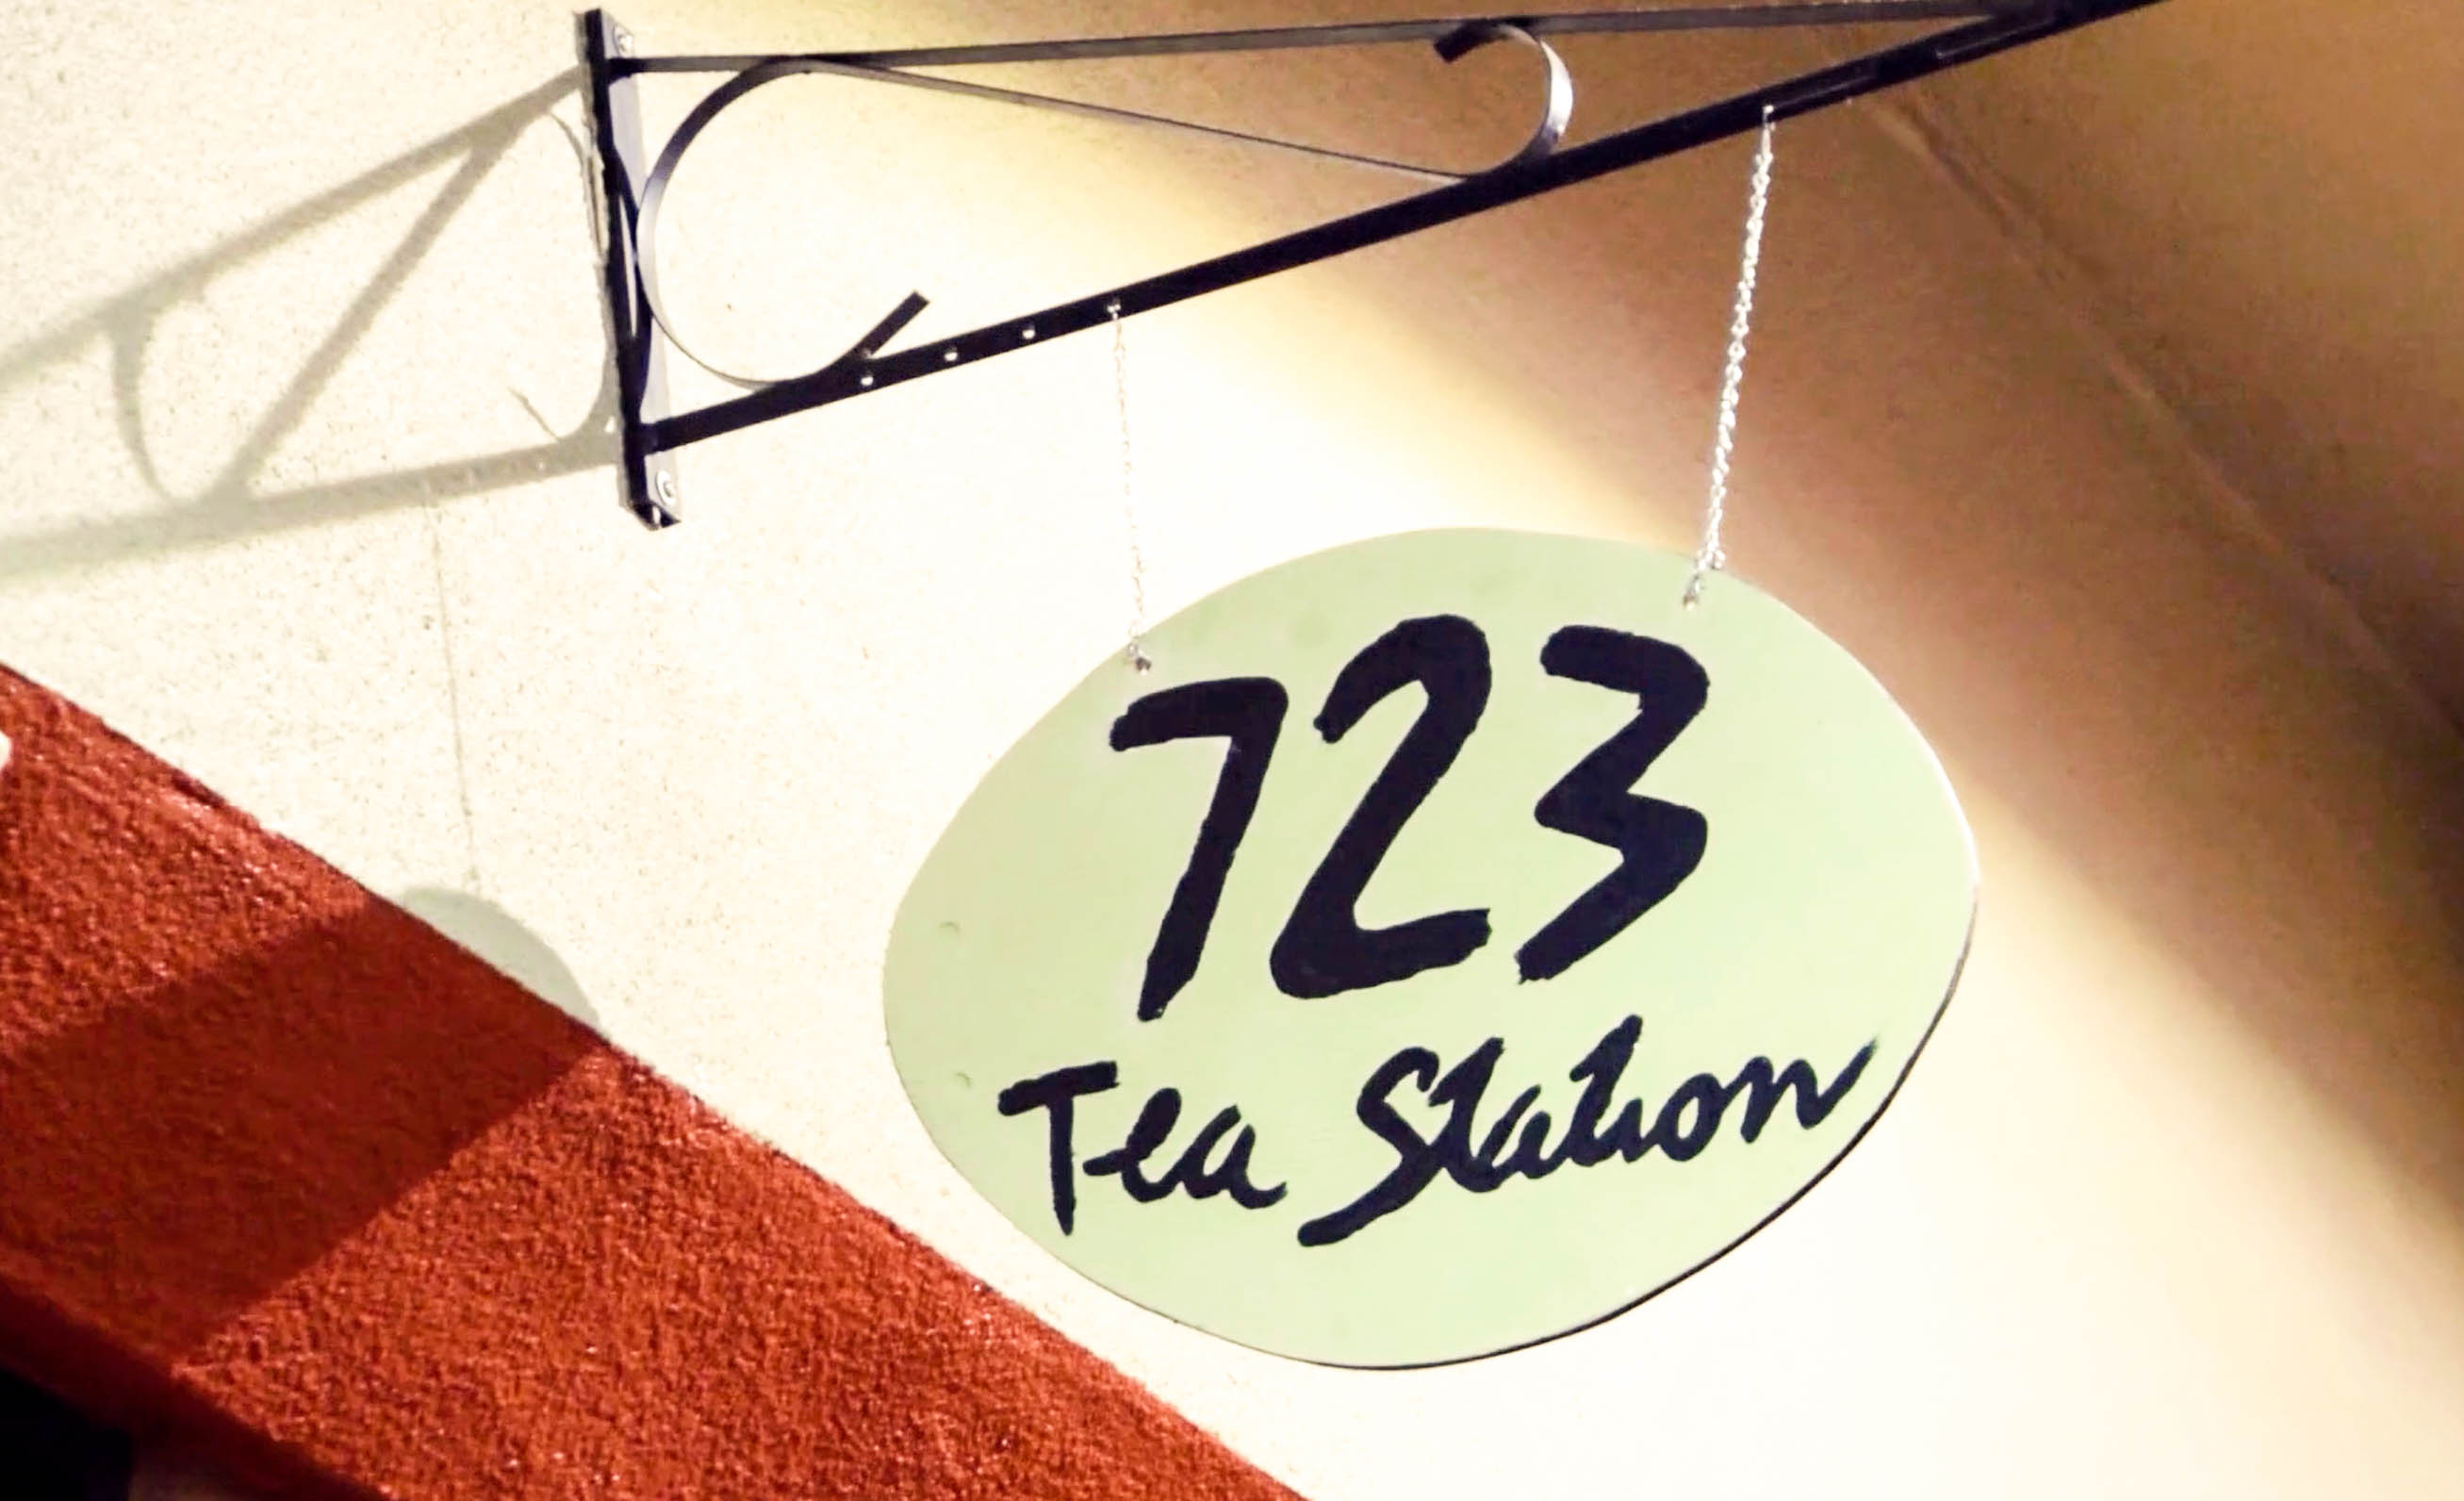 723 Tea Station, Berkeley, CA - Localwise business profile picture